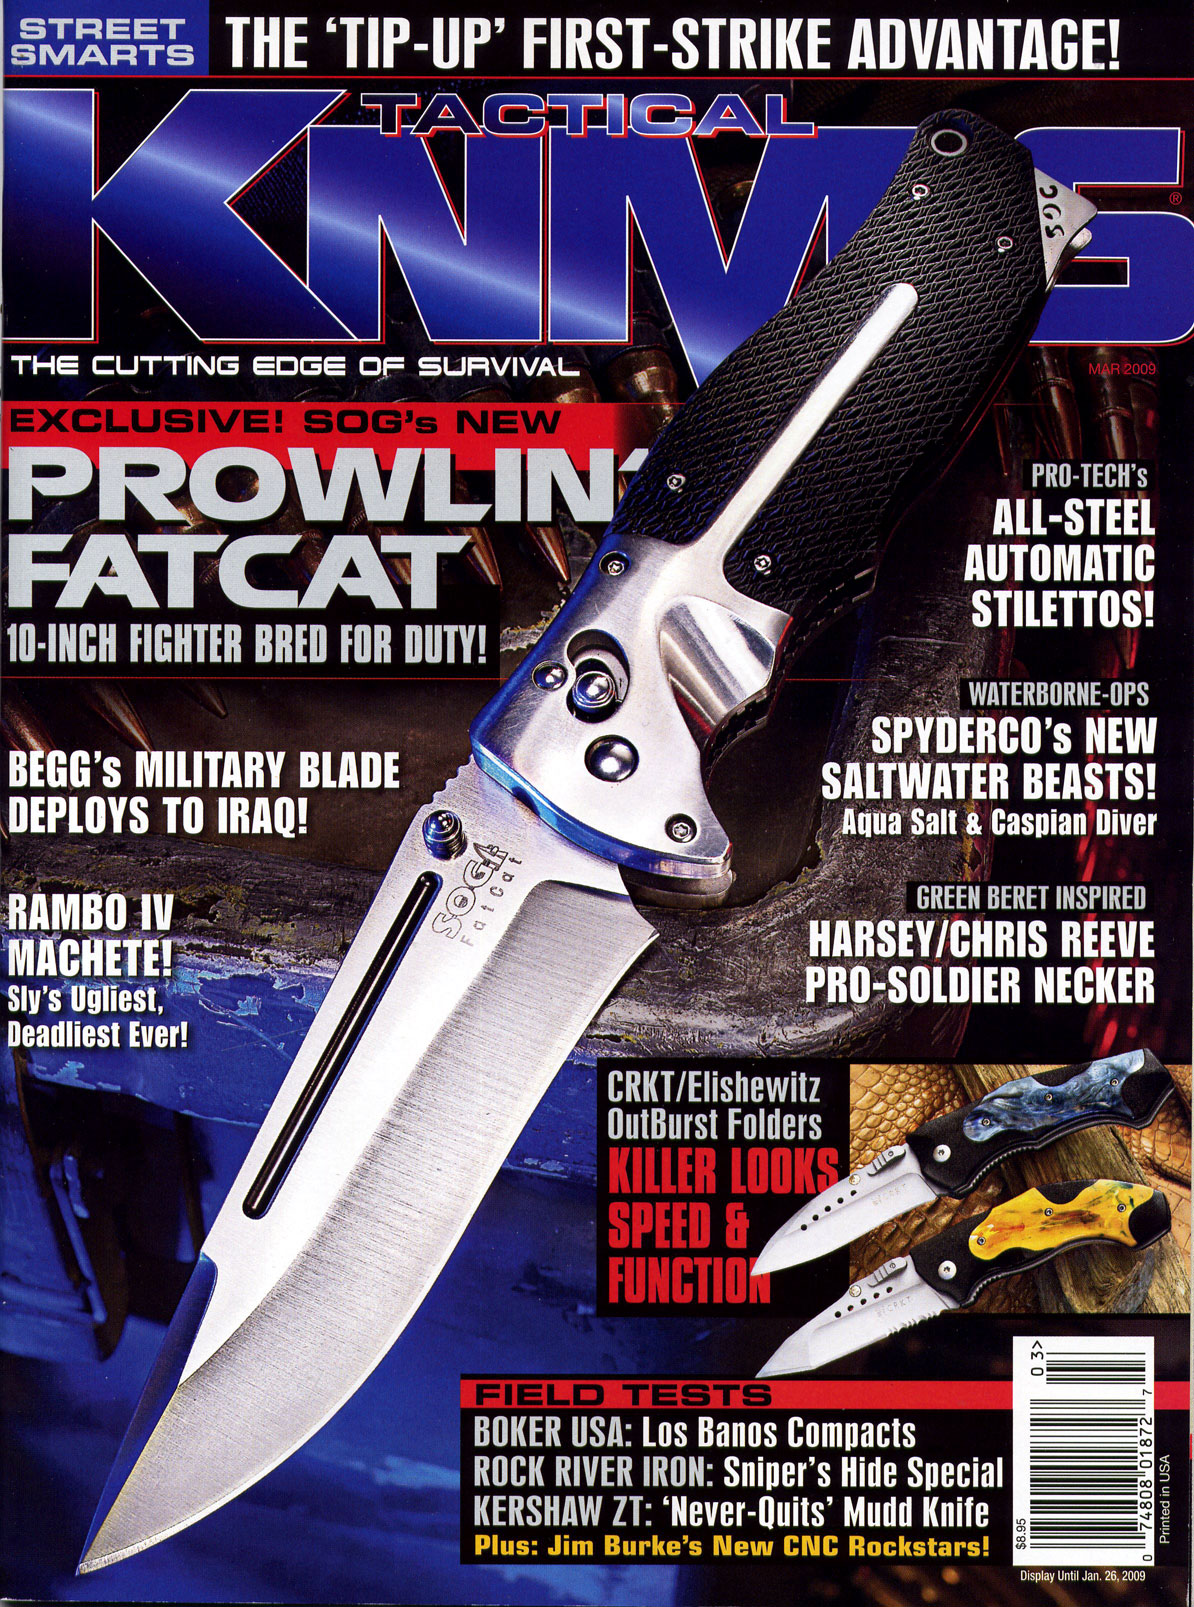 Tactical Knives Magazine, March 2009